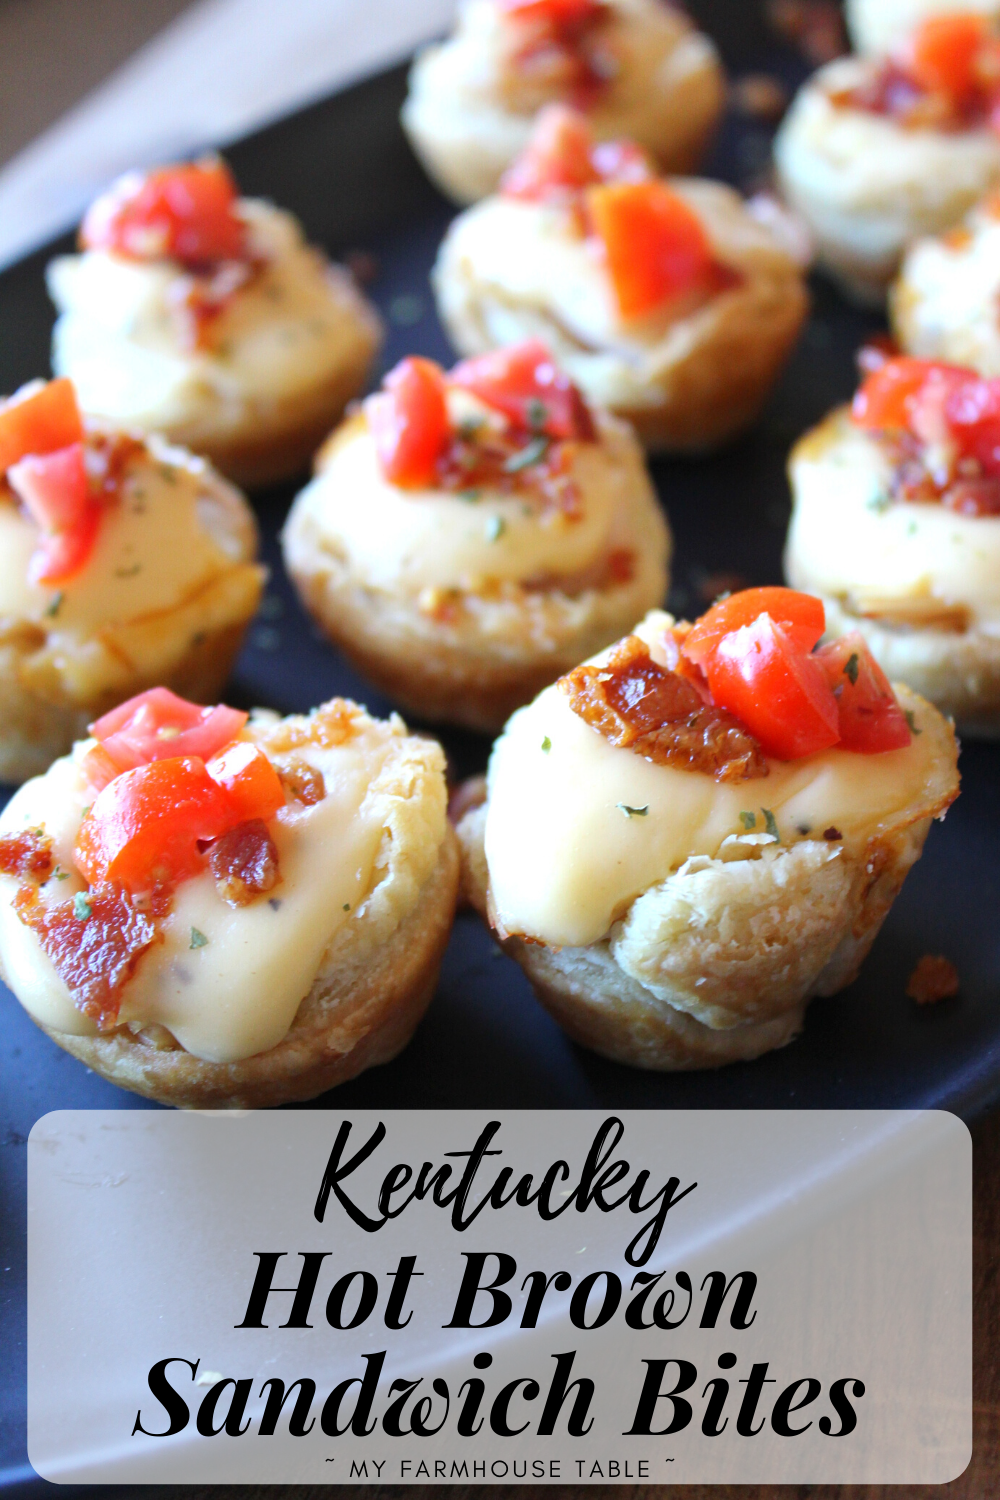 Kentucky Hot Brown Sandwich Bites Simple and Easy Kentucky Derby Party Appetizer Ideas The Hotel Brown Hot Brown Sliders My Farmhouse Table